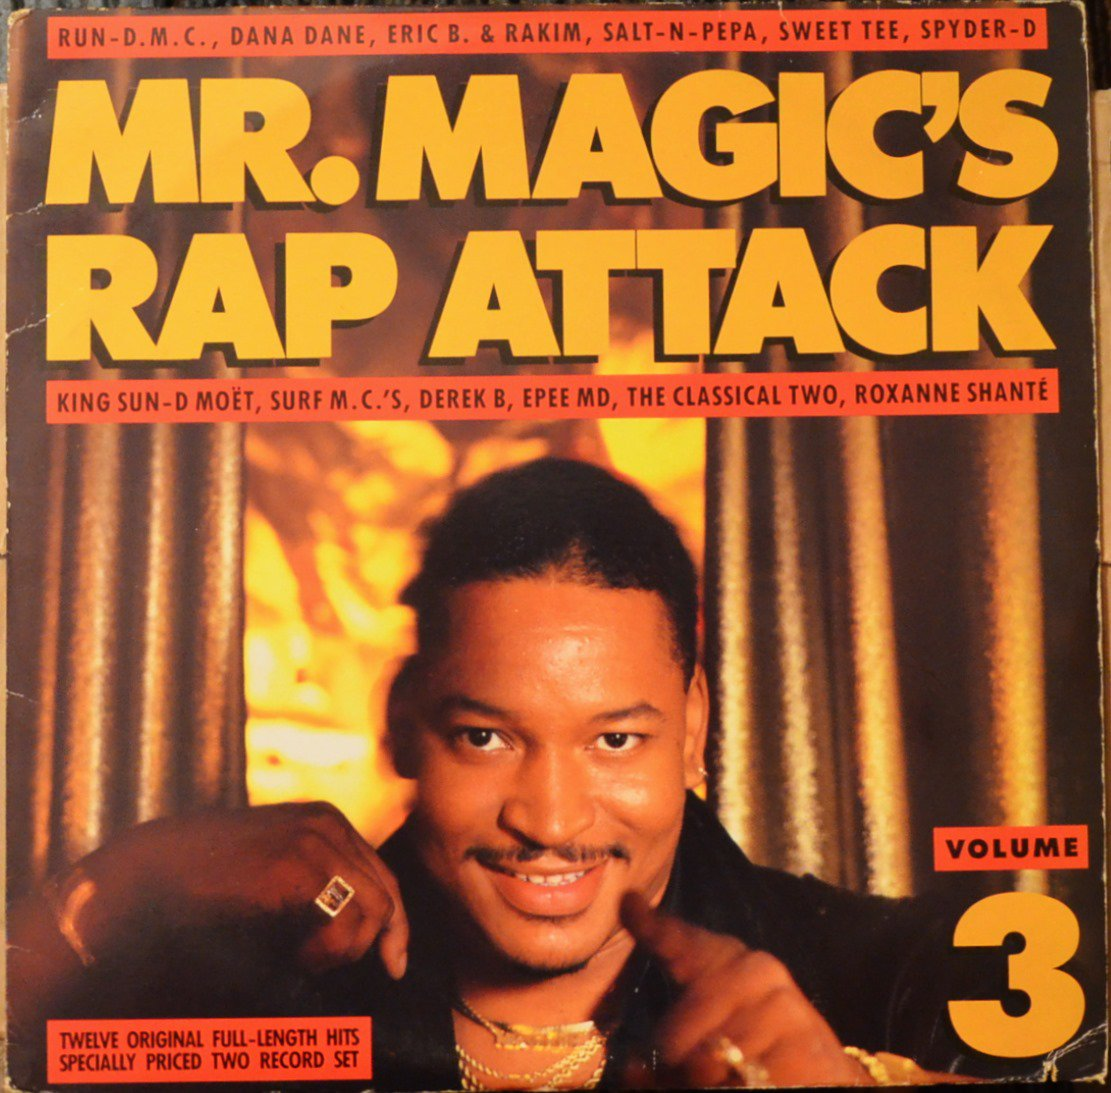 V.A. / MR. MAGIC'S RAP ATTACK (VOLUME 3) (2LP)